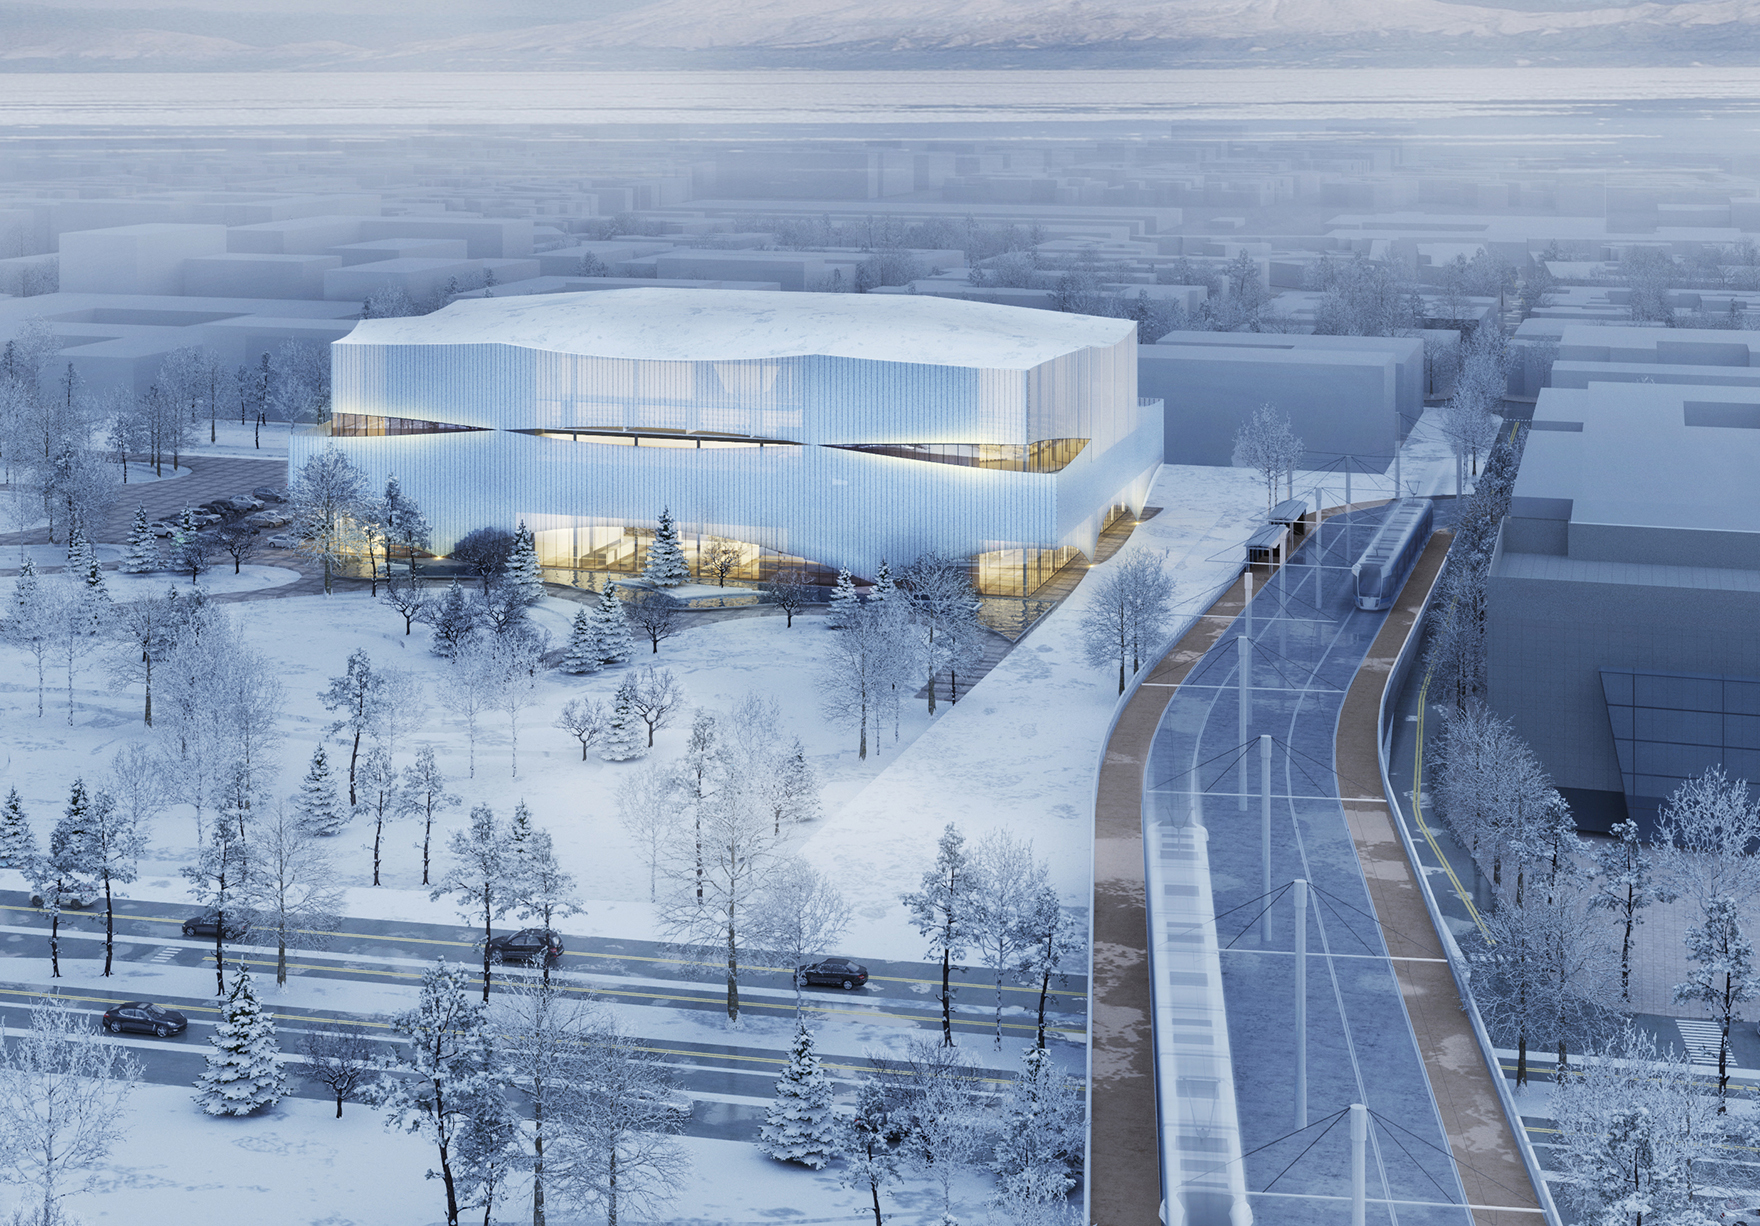 Angers Patinoire Ice Arena France Sport Leisure External View Surroundings Lh